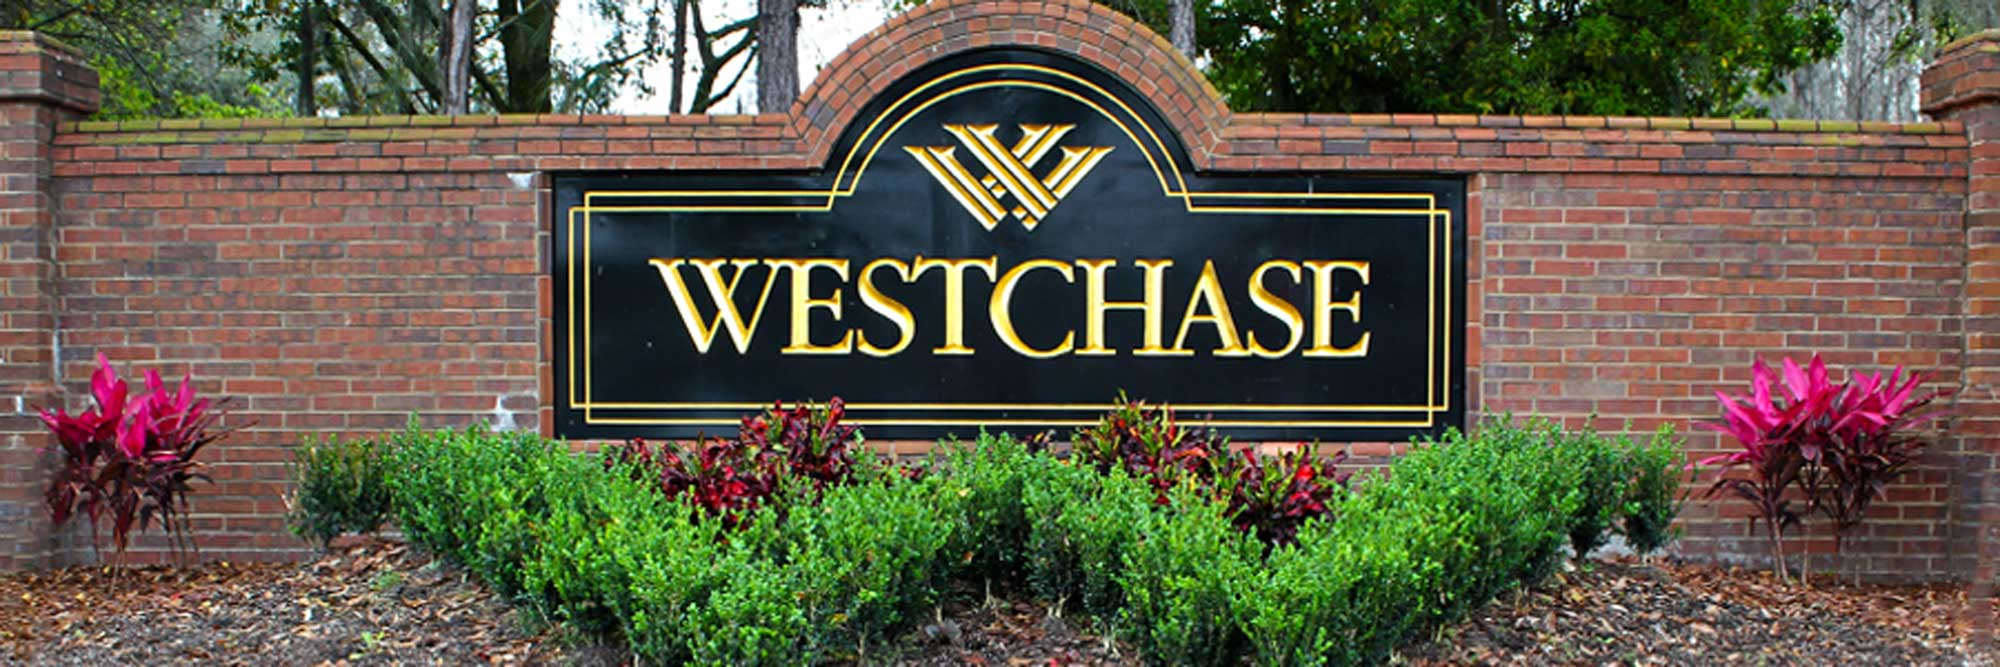 Westchase carpet cleaning - Generations Carpet Cleaning